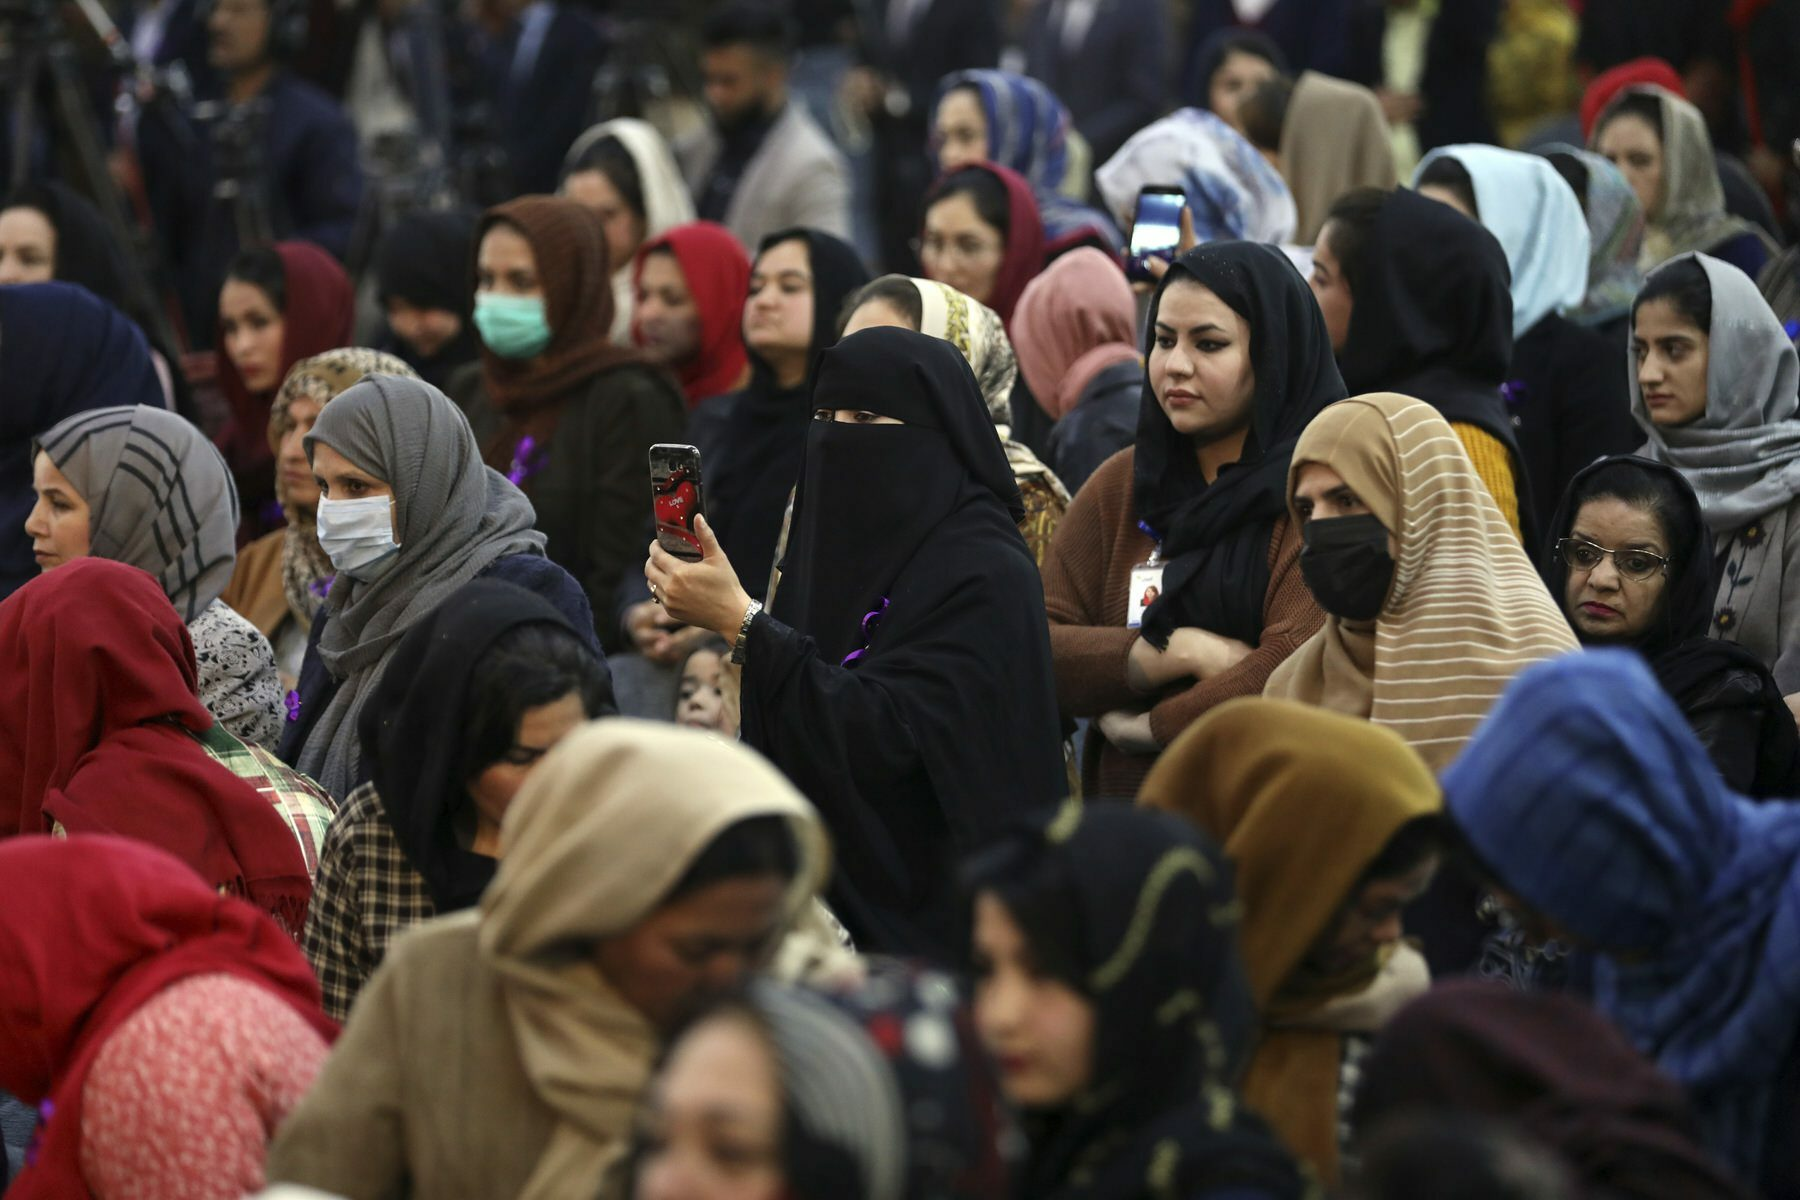 Afghan women attend an event to mark International Women's Day in Kabul, Afghanistan.